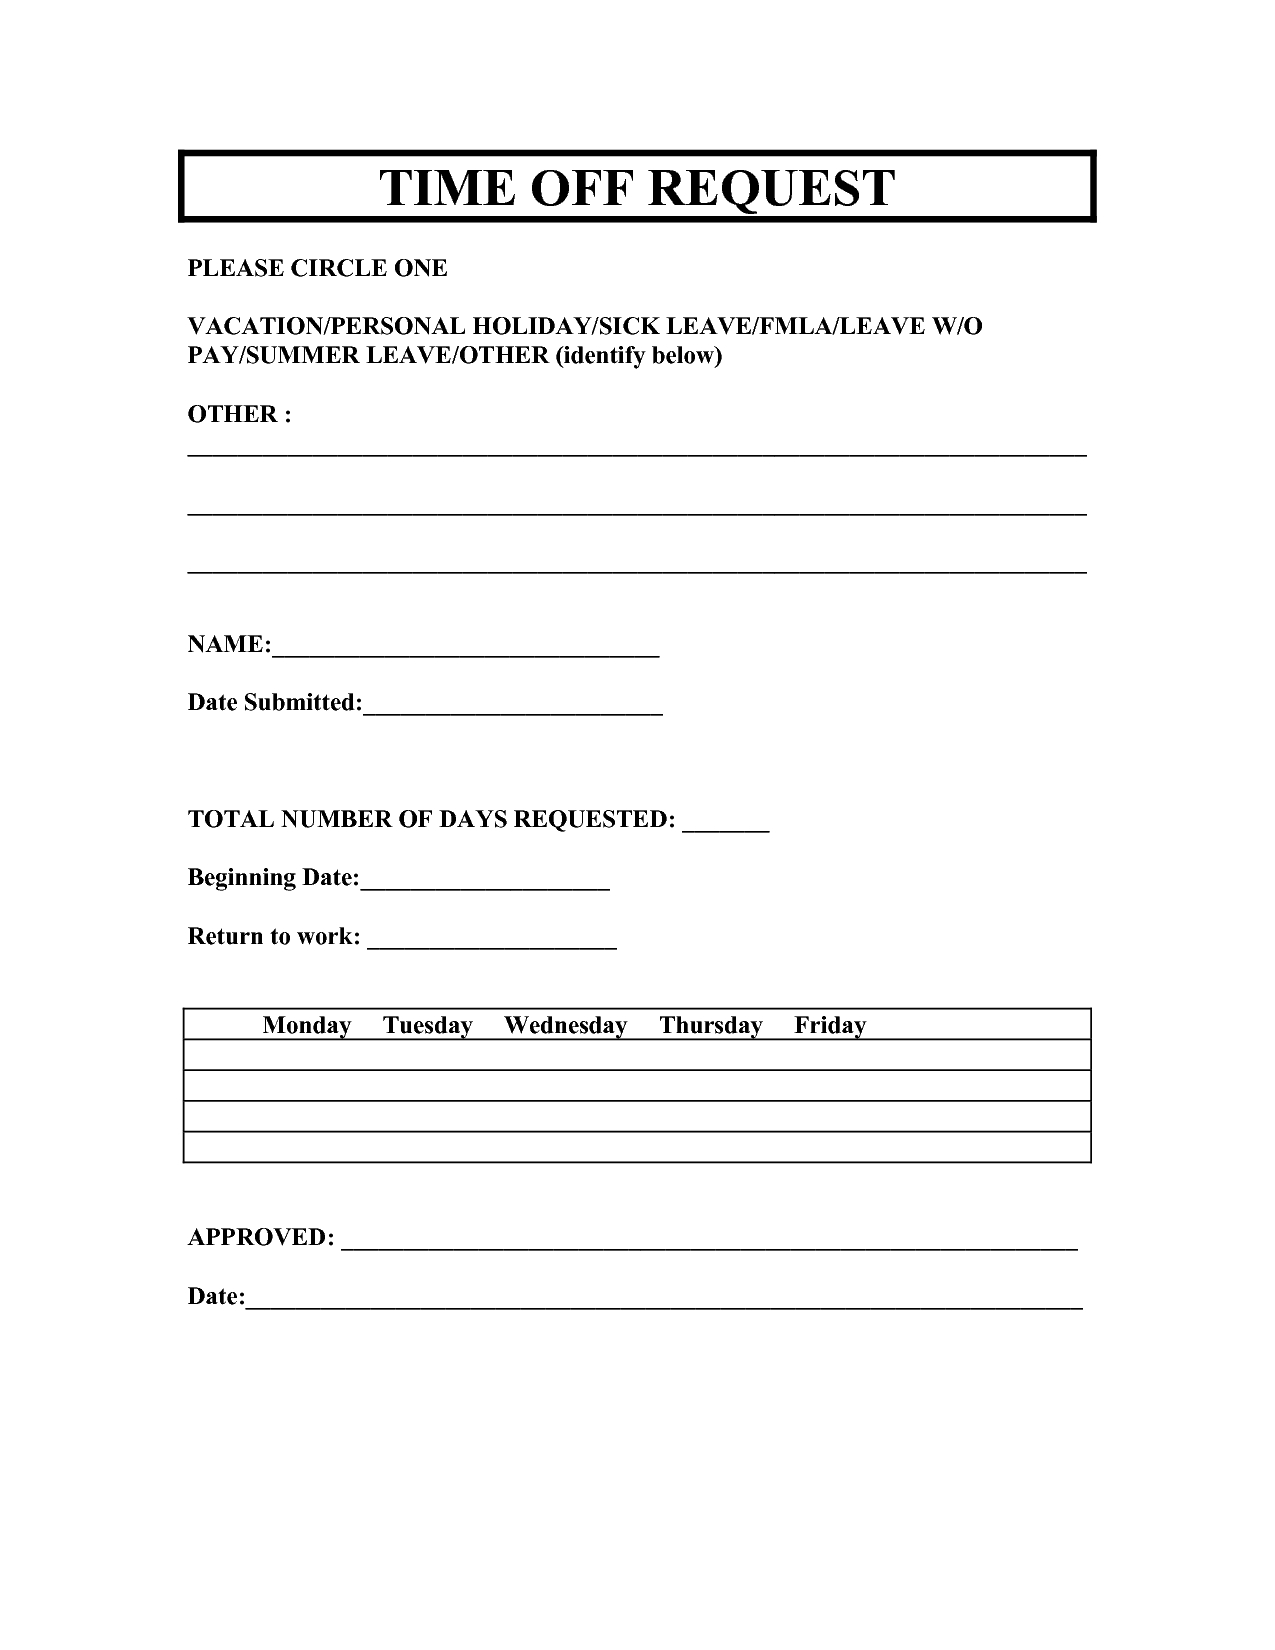 Vacation Request Forms 2014 Free Printable | Printable Request For - Free Printable Hr Forms